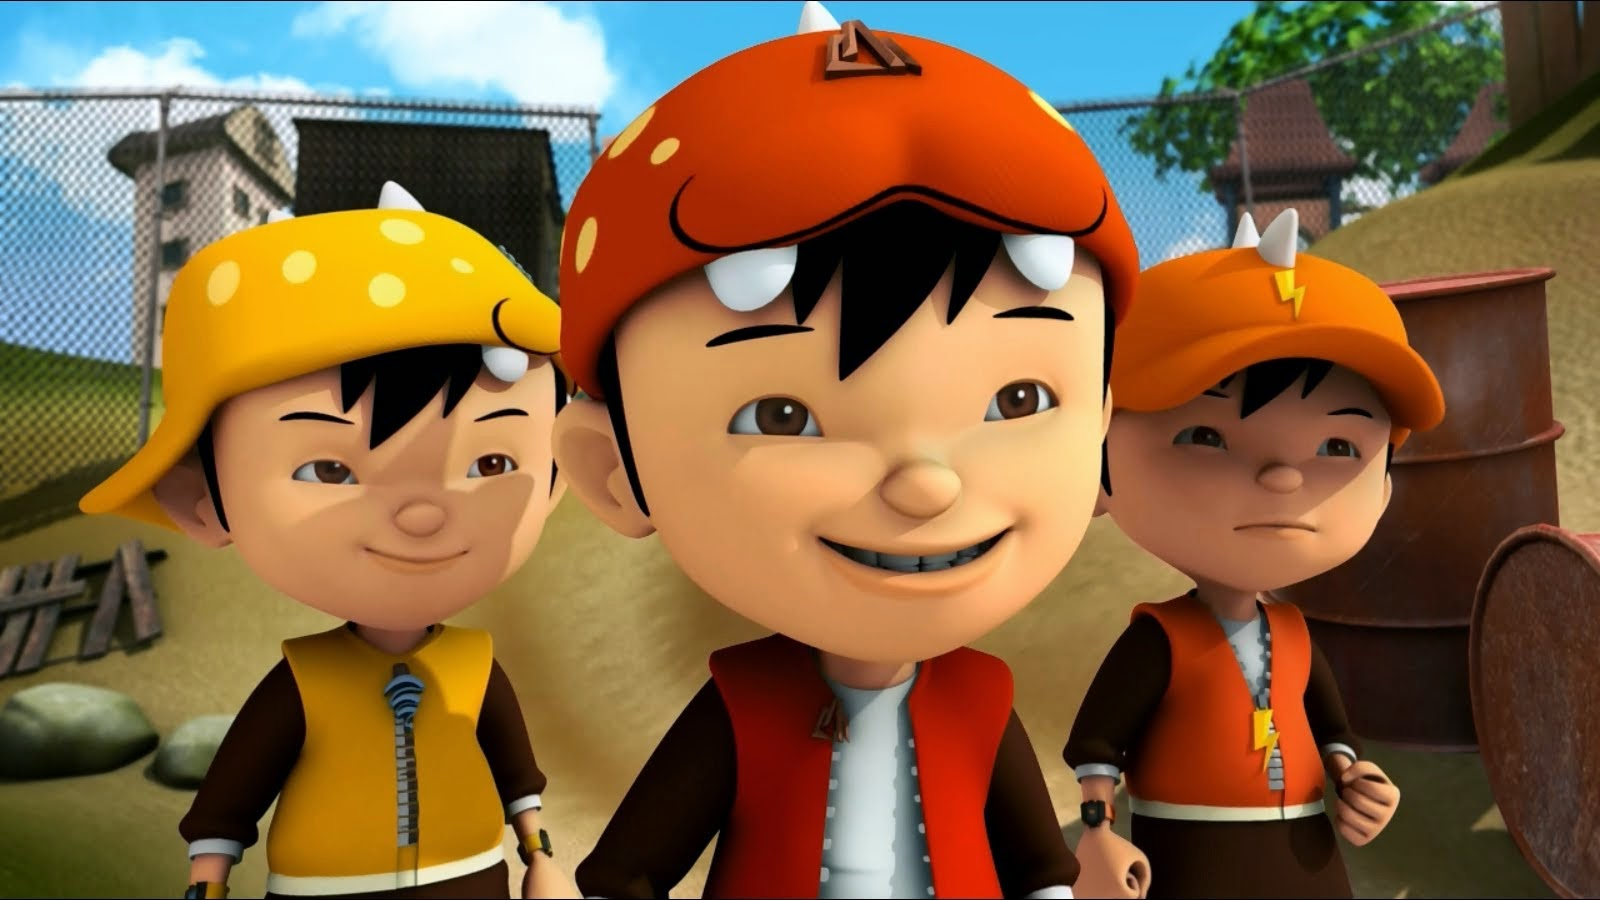 http://gallerycartoon.blogspot.com/2015/03/boboiboy-cartoon-gallery-3.html